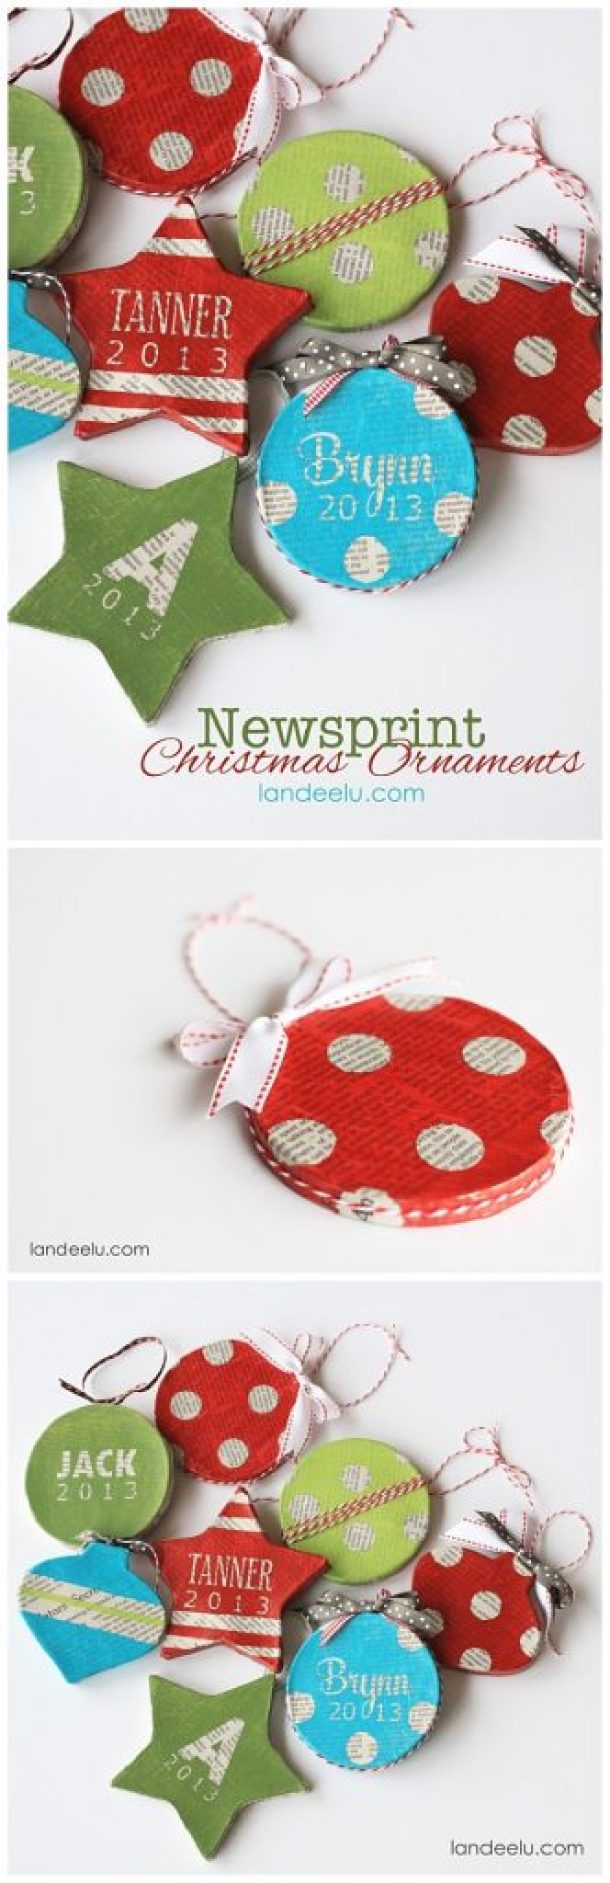 DIY Newsprint Christmas Ornaments Tutorial - So fun and they make DARLING Christmas Decorations the kids can even make themselves!